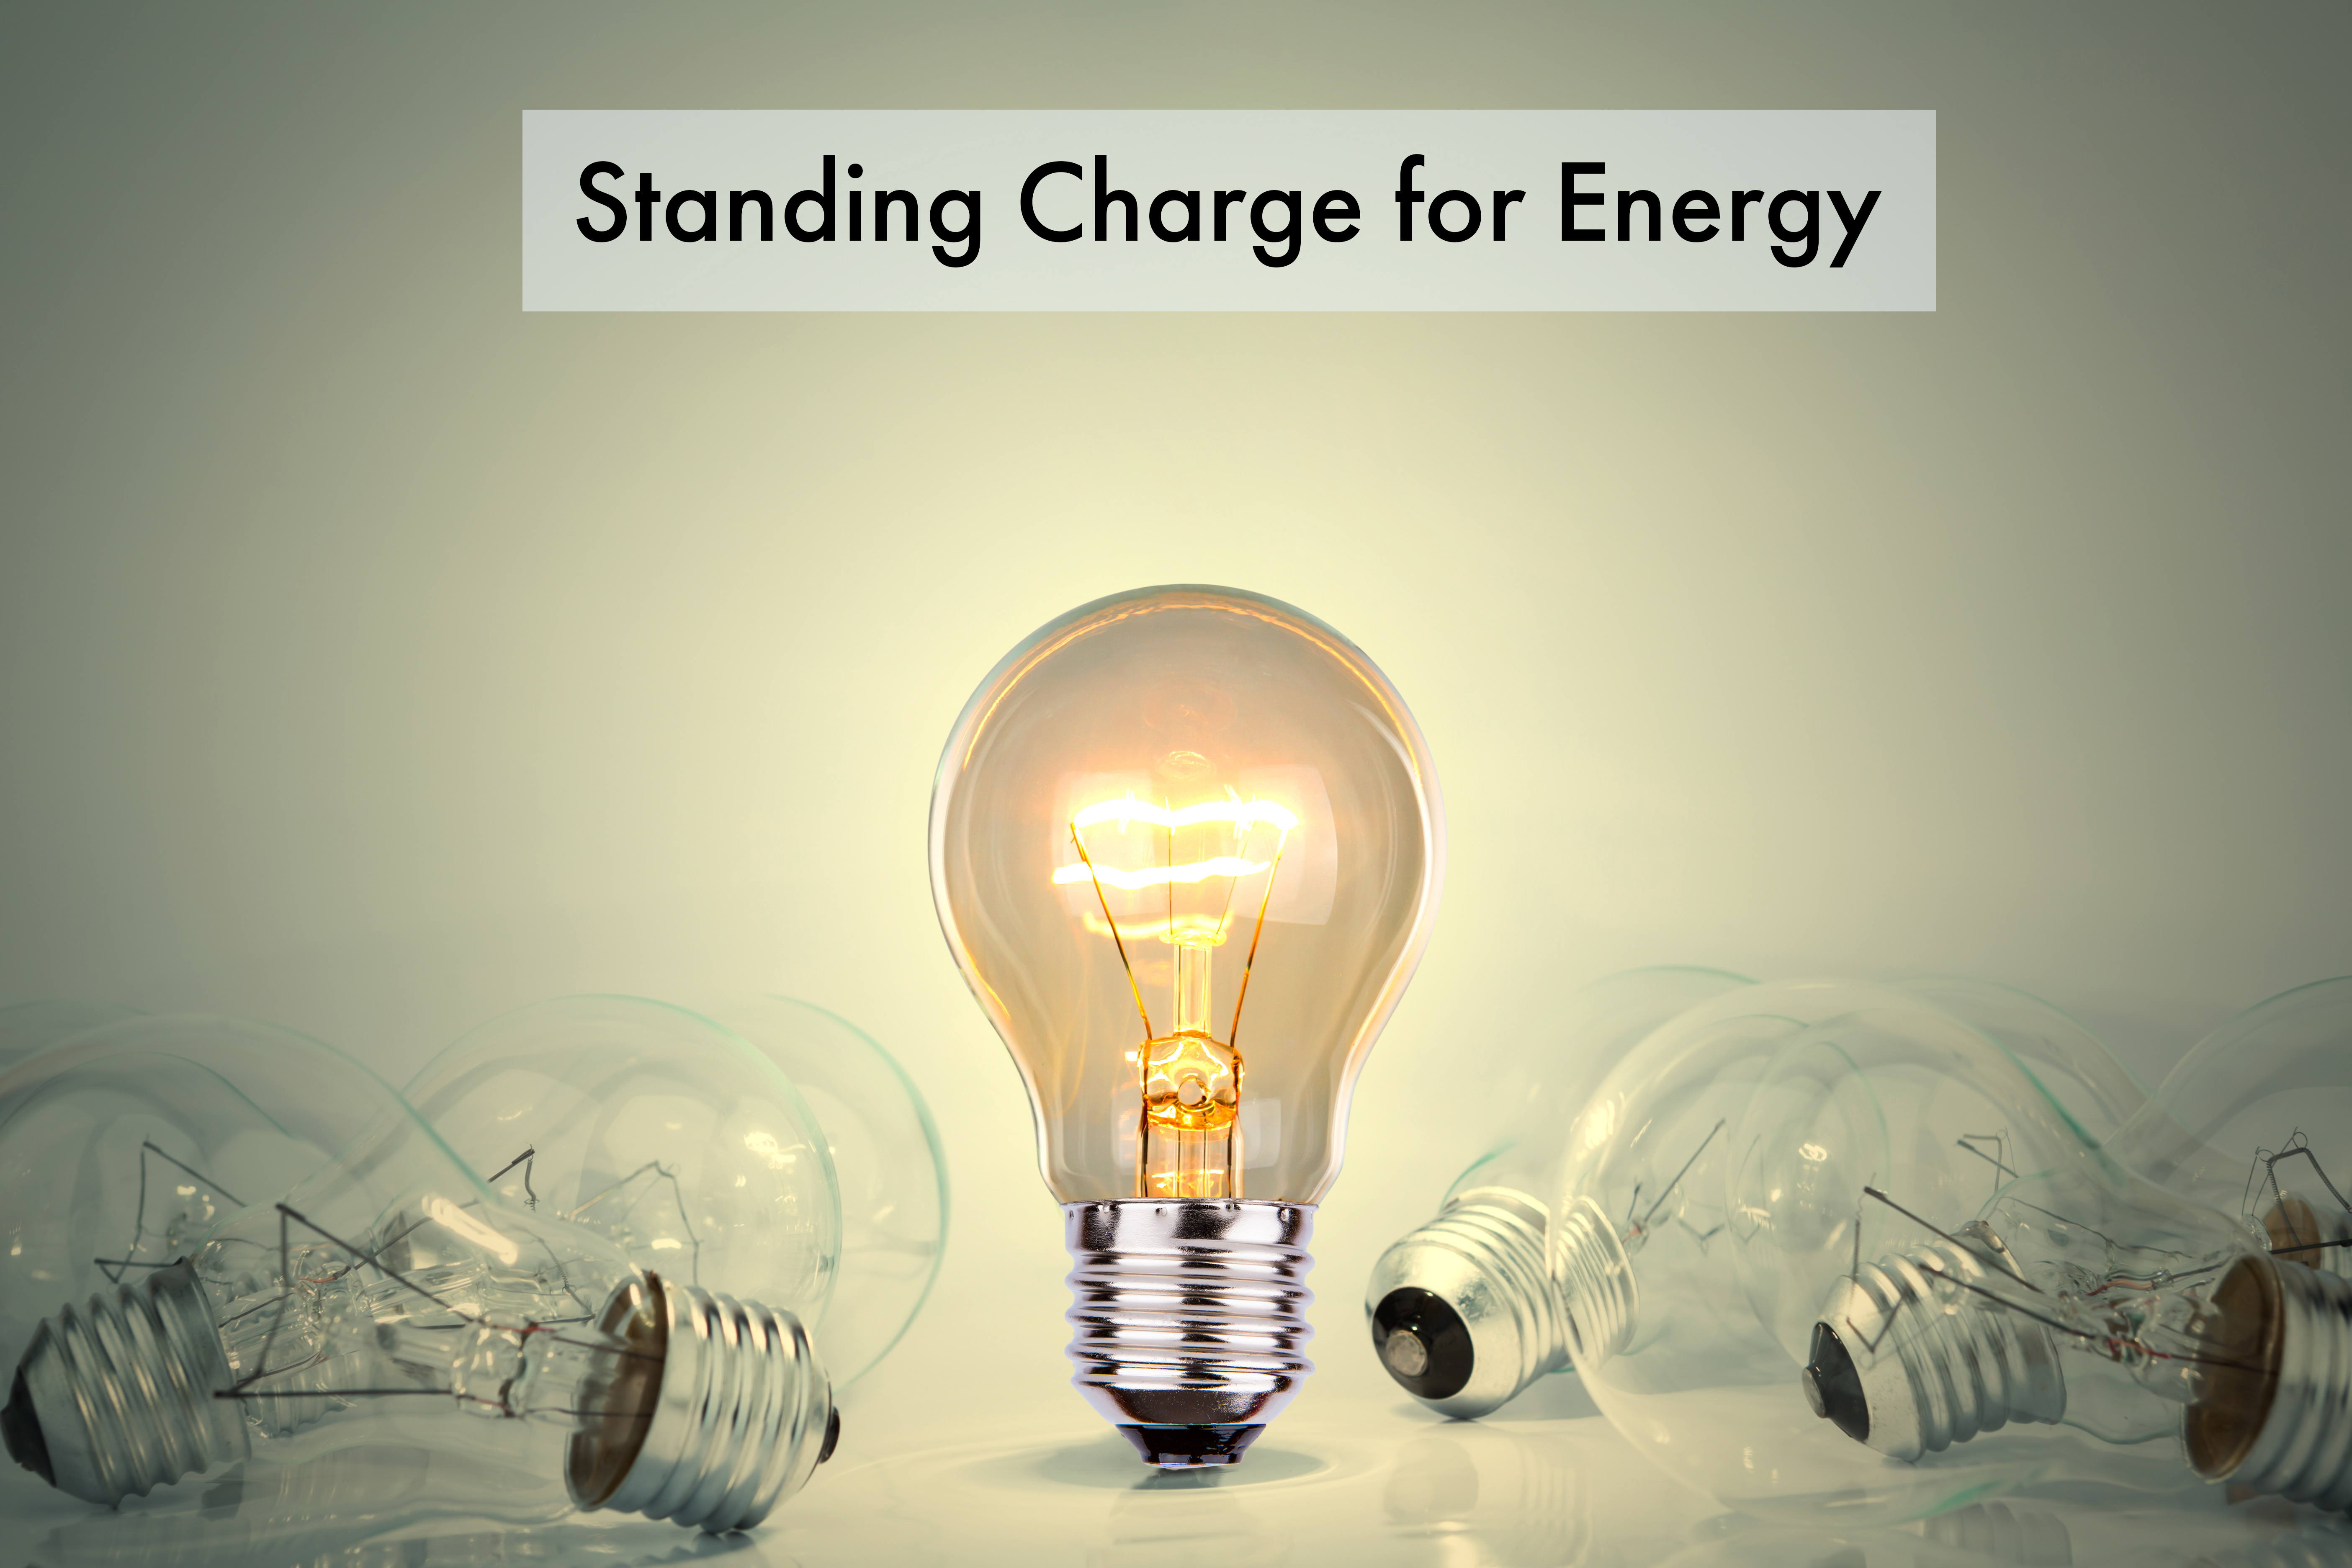 standing charge for energy written above multiple lightbulbs with only one stood up glowing, all the rest are on their sides not glowing.